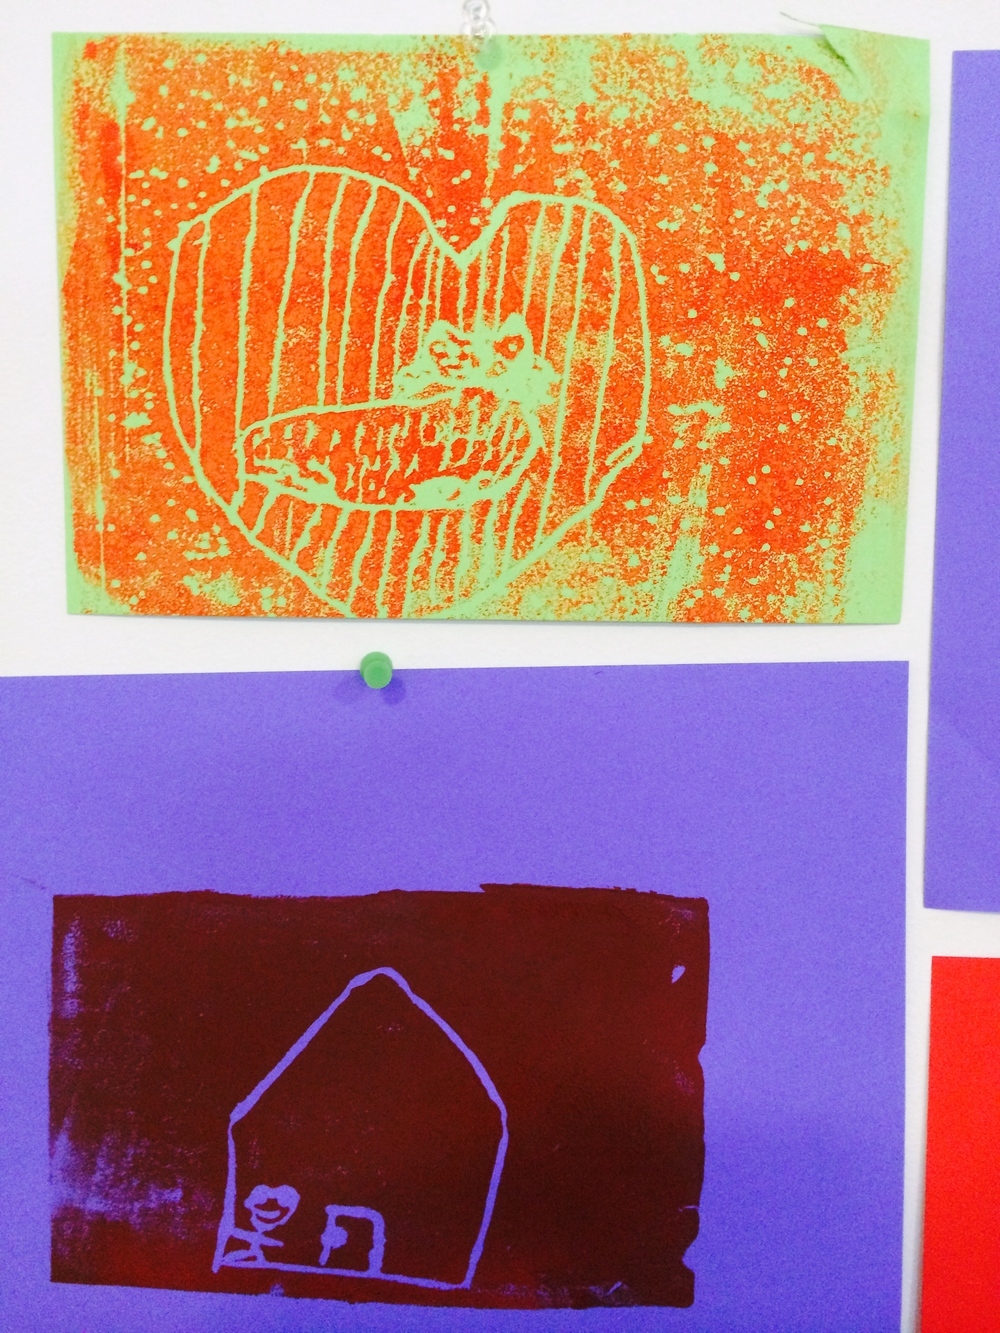 Experimenting with block printing inks and polystyrene trays to make prints and multiples.